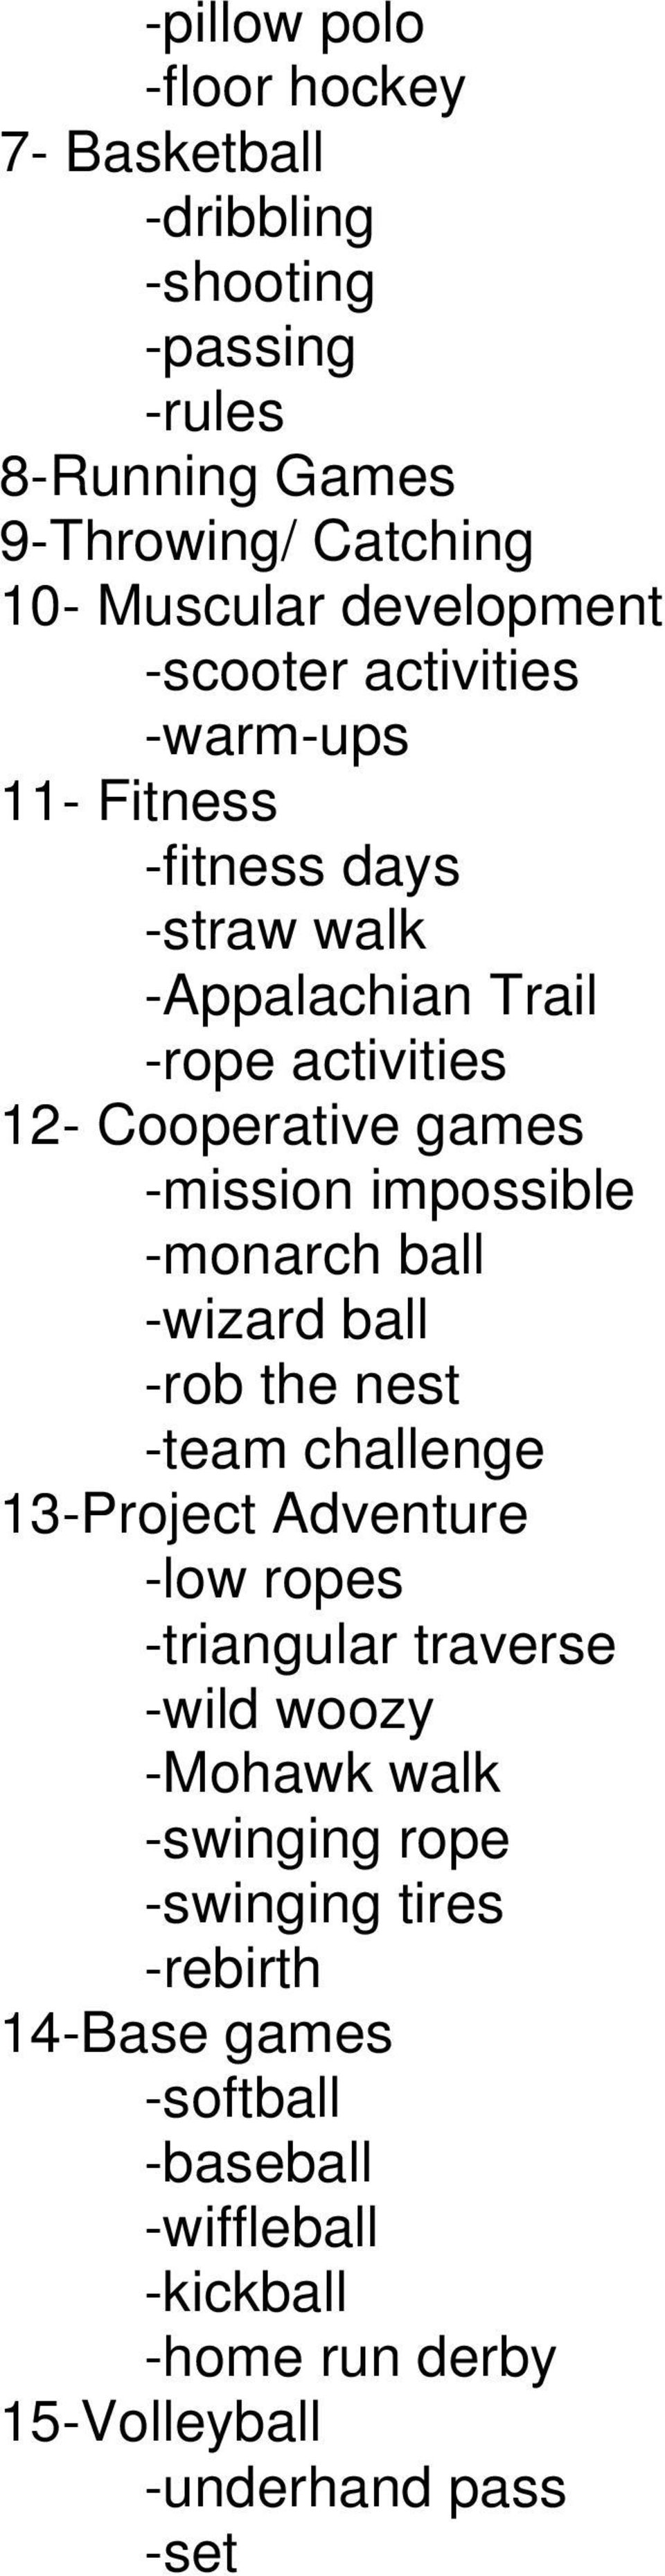 impossible -monarch ball -wizard ball -rob the nest -team challenge 13-Project Adventure -low ropes -triangular traverse -wild woozy -Mohawk